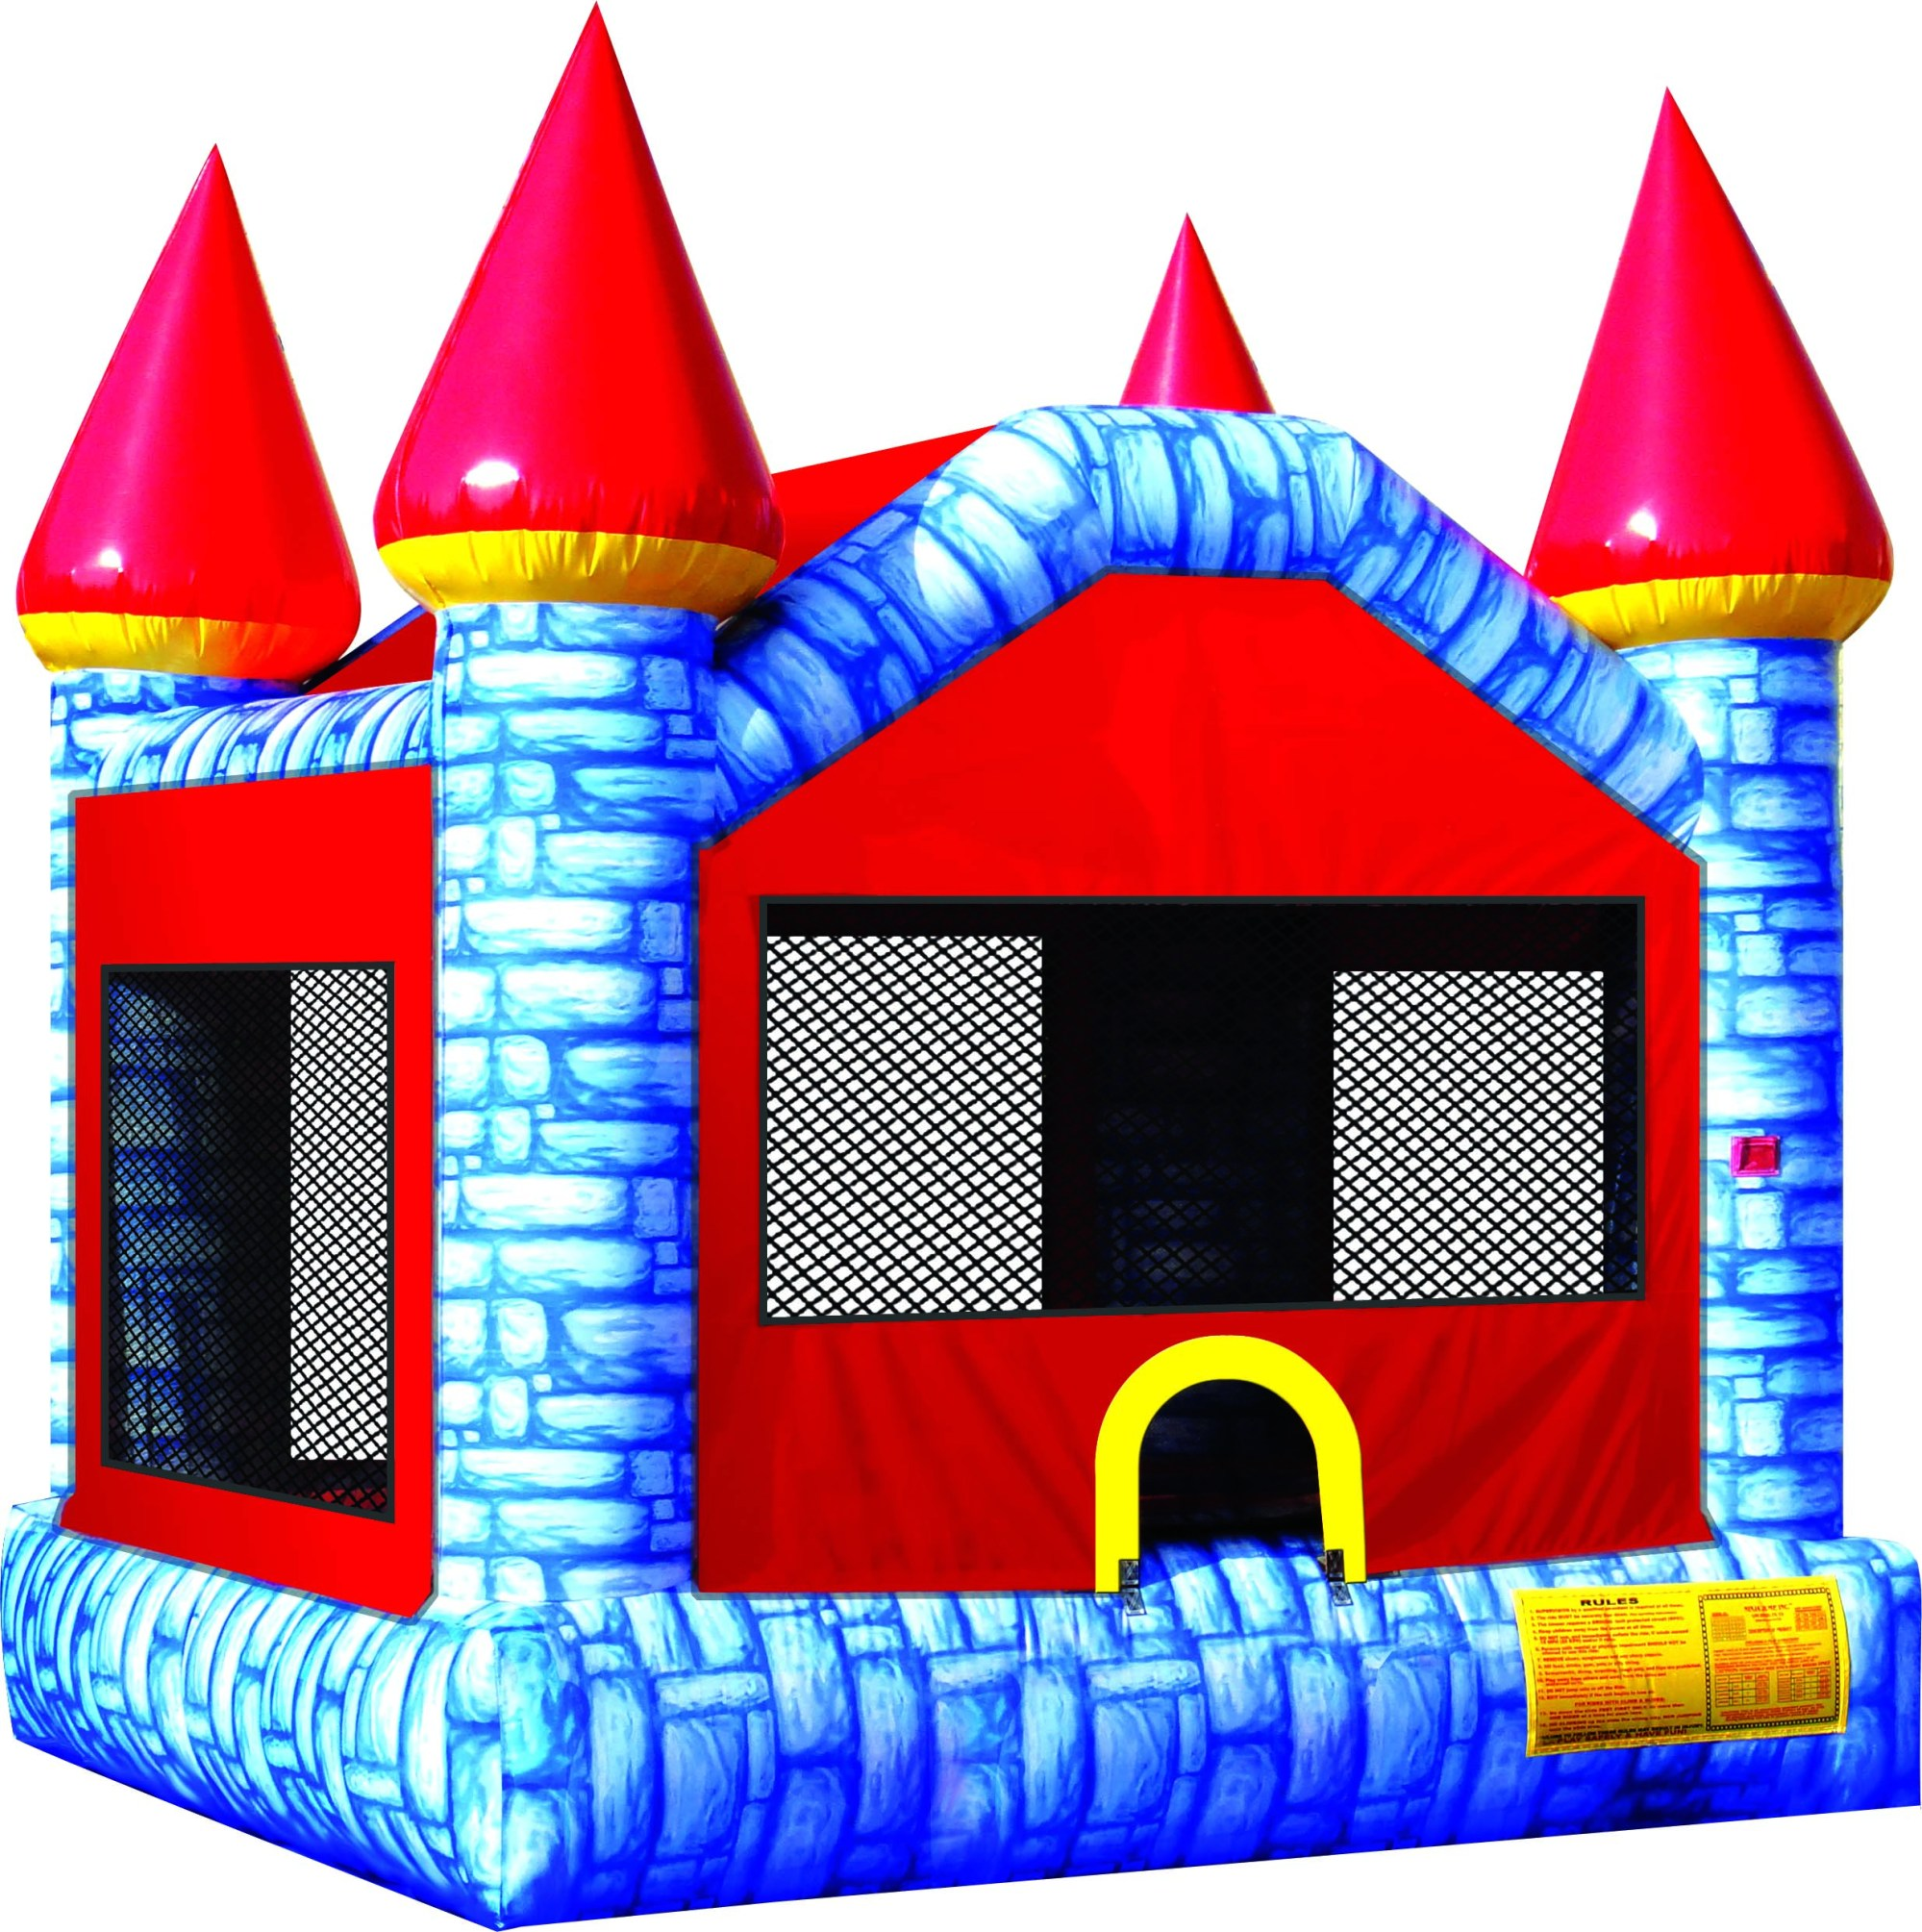 hight resolution of 2470x2482 bounce houses water slide inflatables party fun greenville sc by